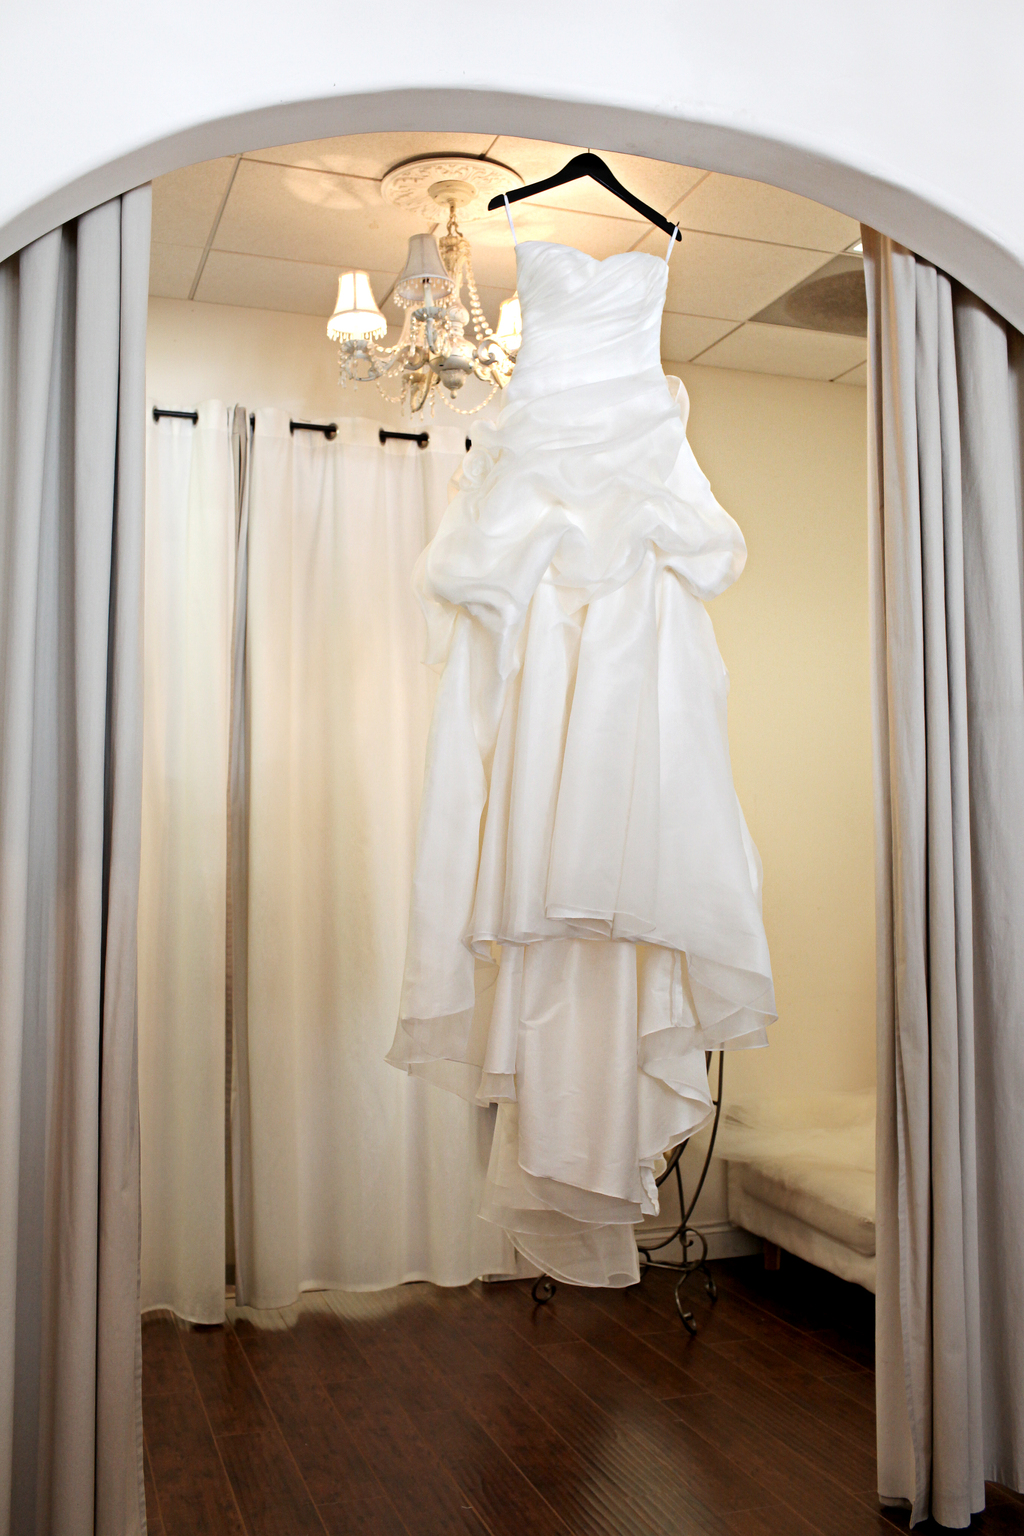 Brides-wedding-dress-hangs-in-doorway.full